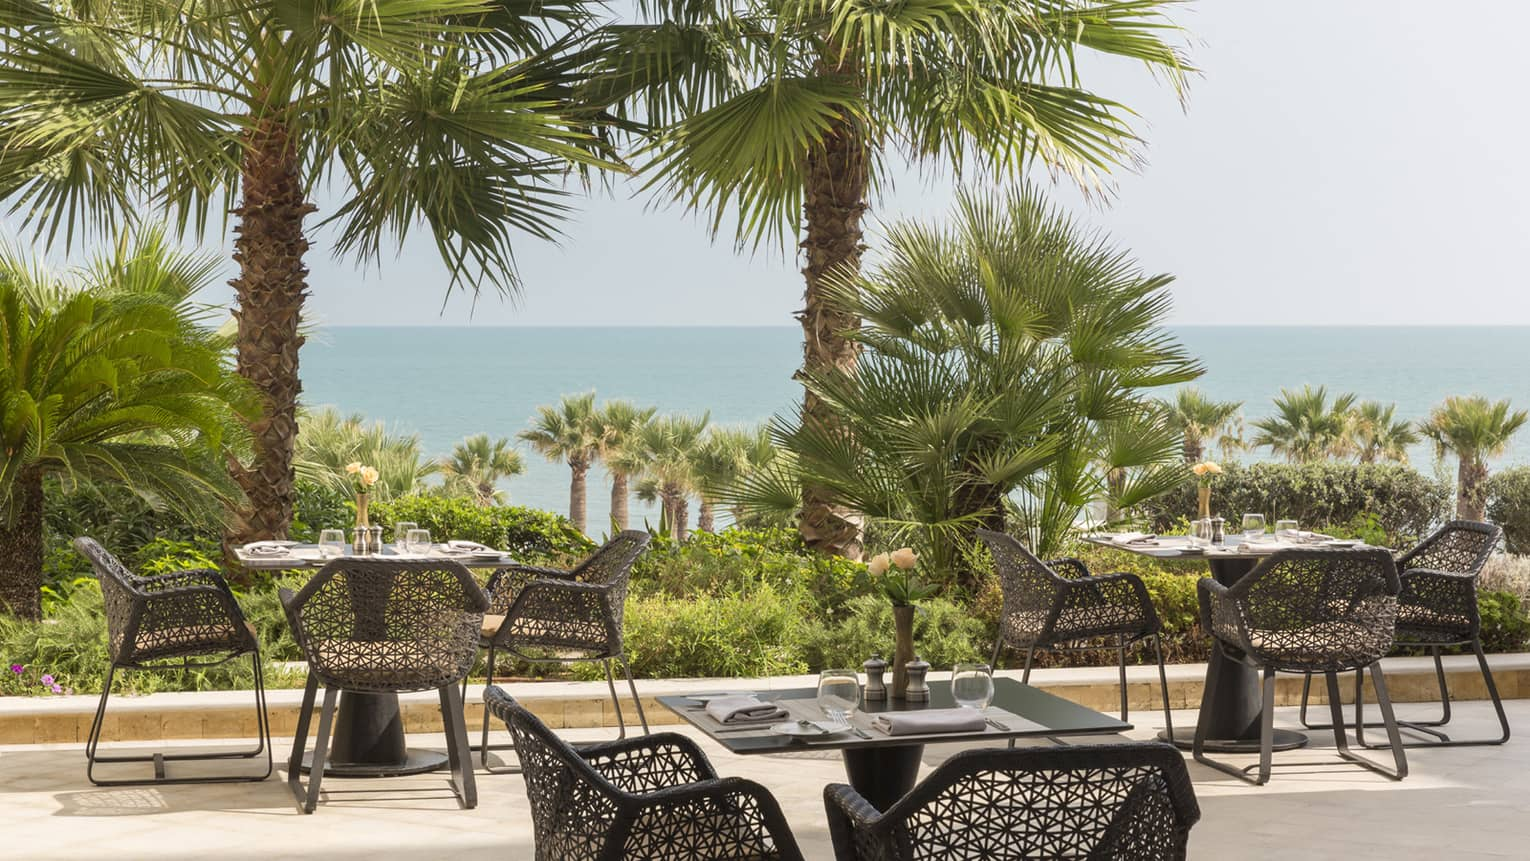 Black tables and geometric black chairs at outdoor bistro overlooking palm trees and ocean